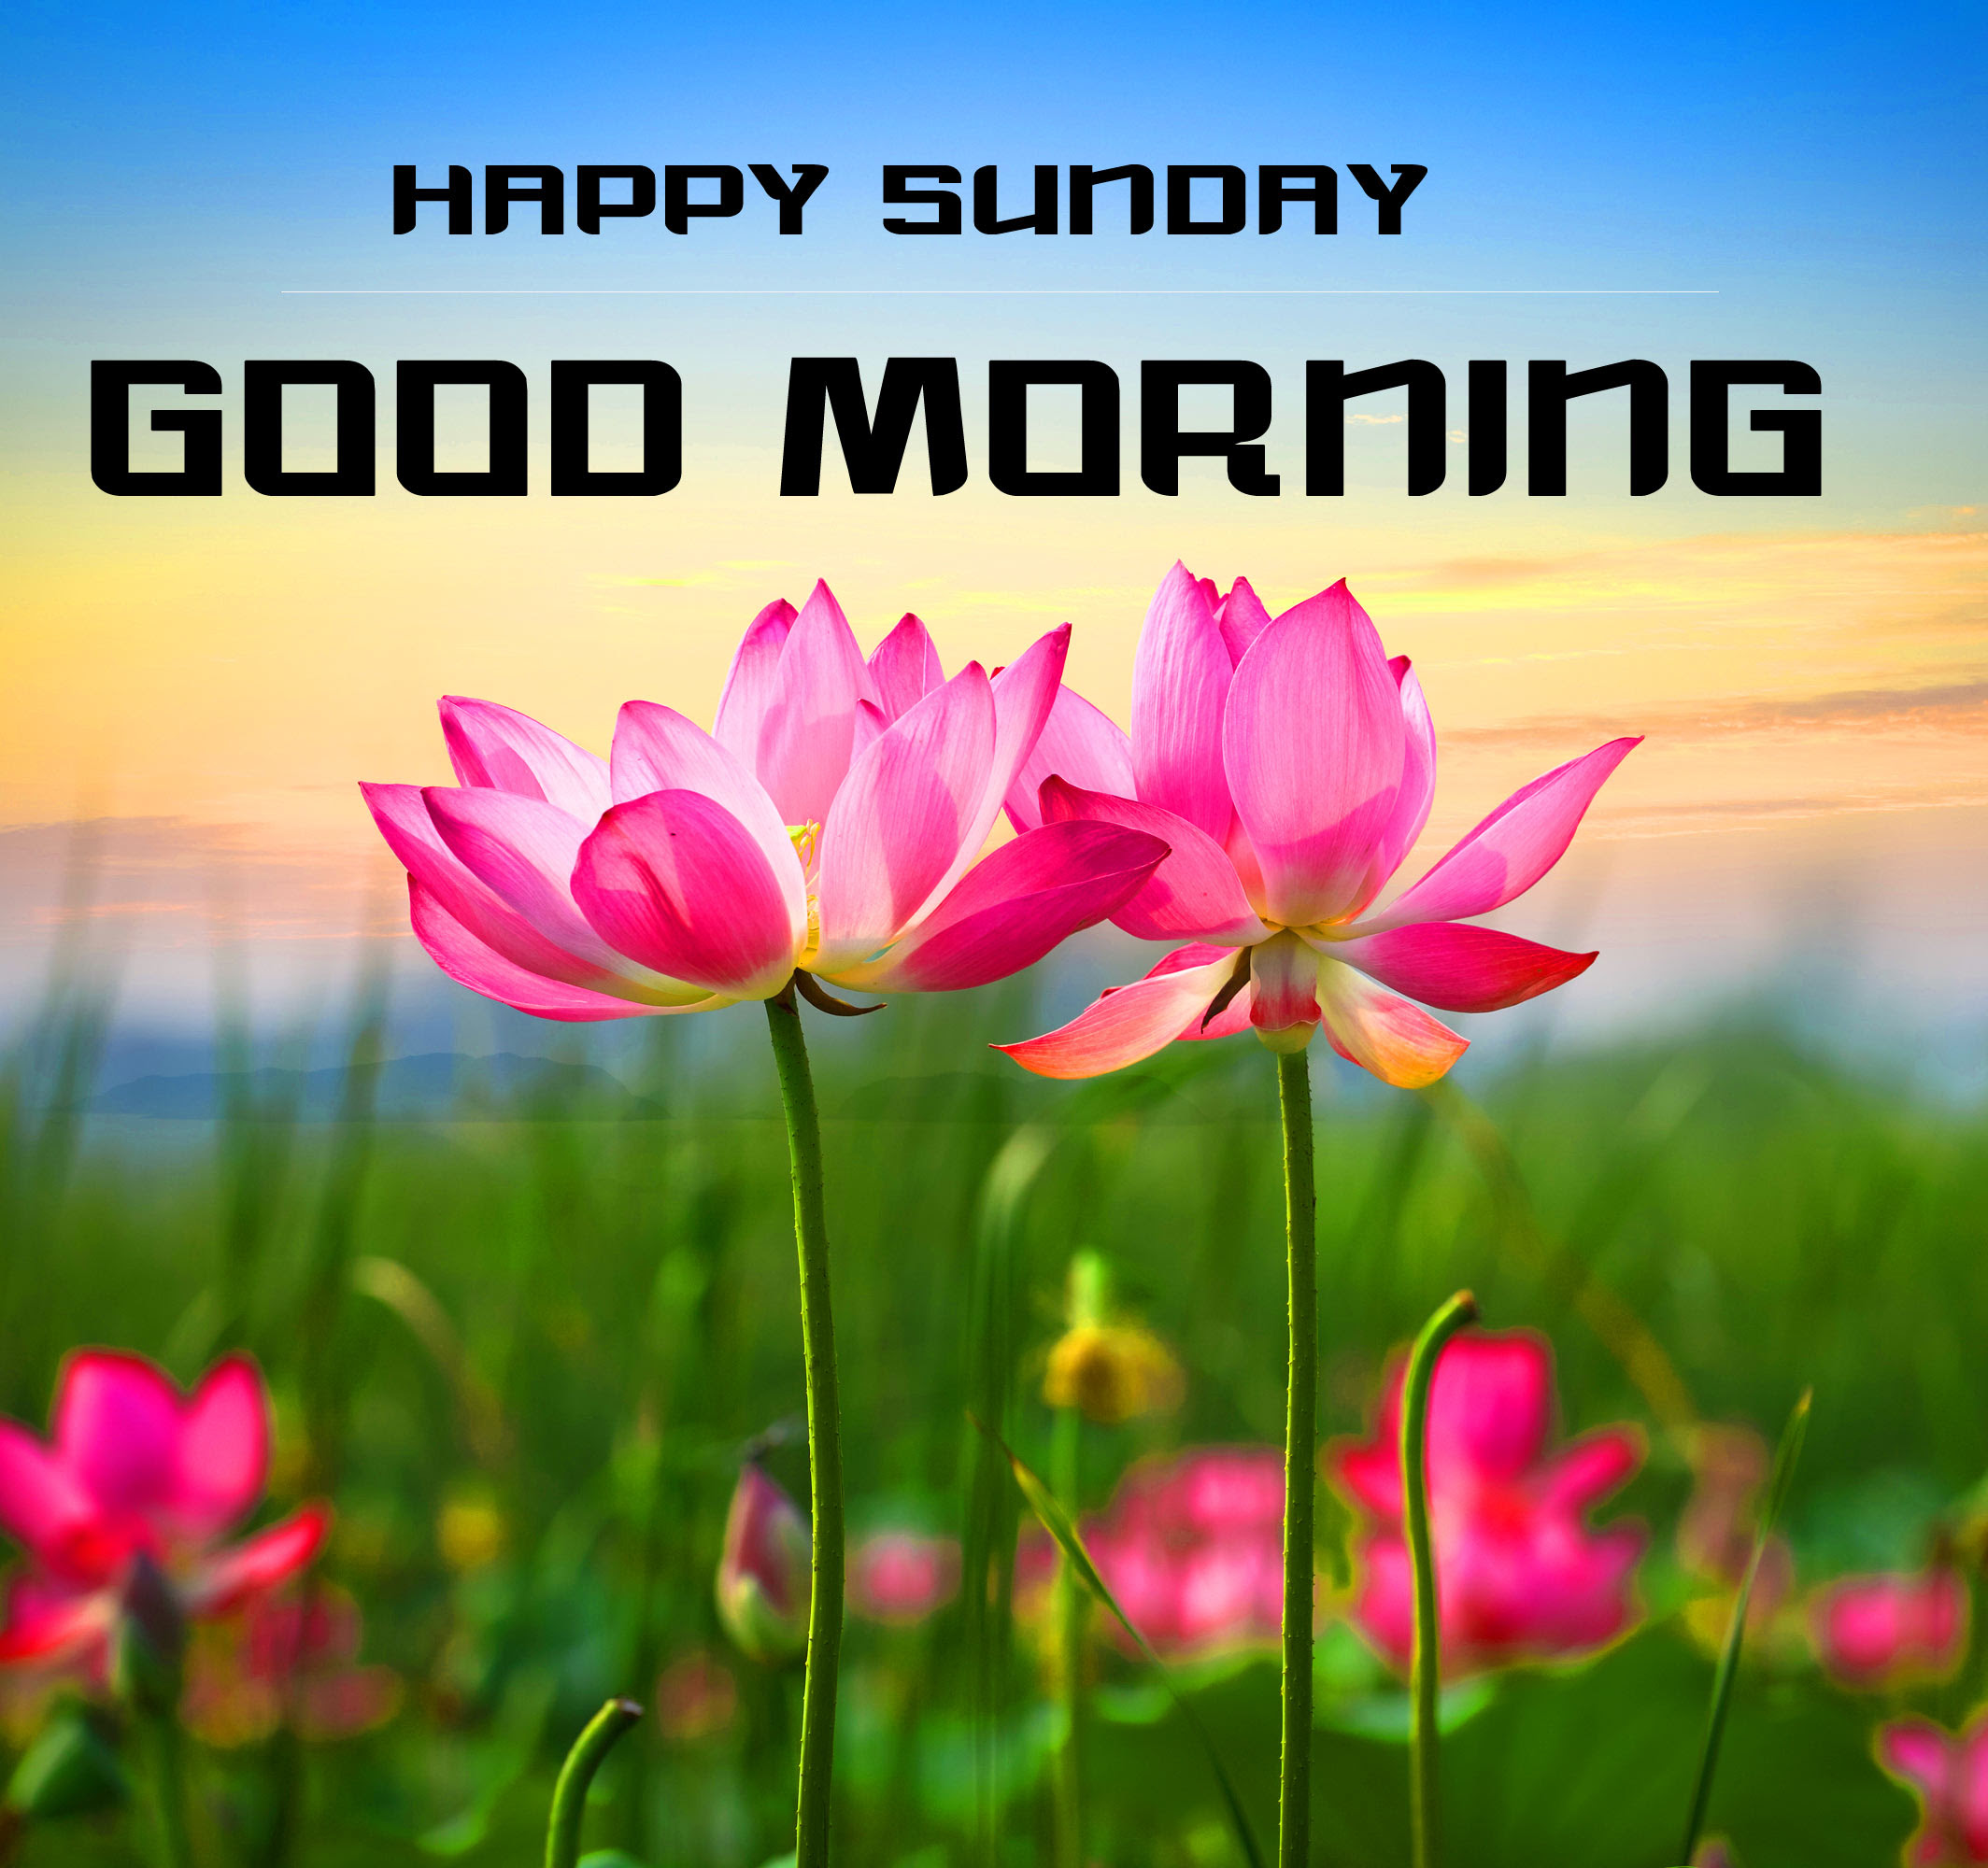 Sunday Good Morning Wishes Images Free for Facebook